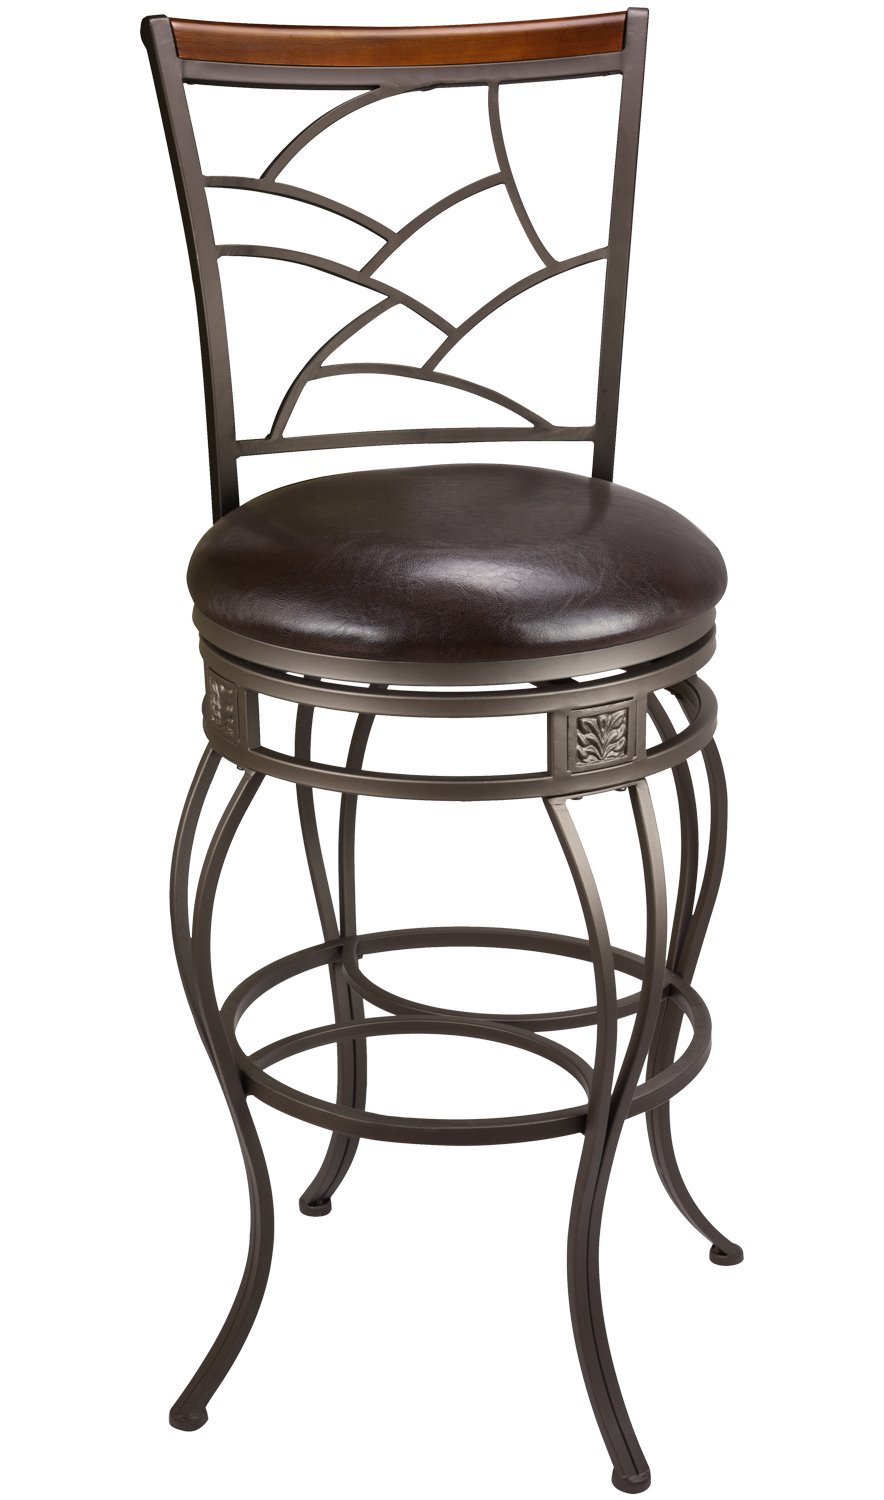 Revel Monarch II 30'' Classic Swivel Bar Stool, Old Steel Finish, Brown Faux Leather Seat